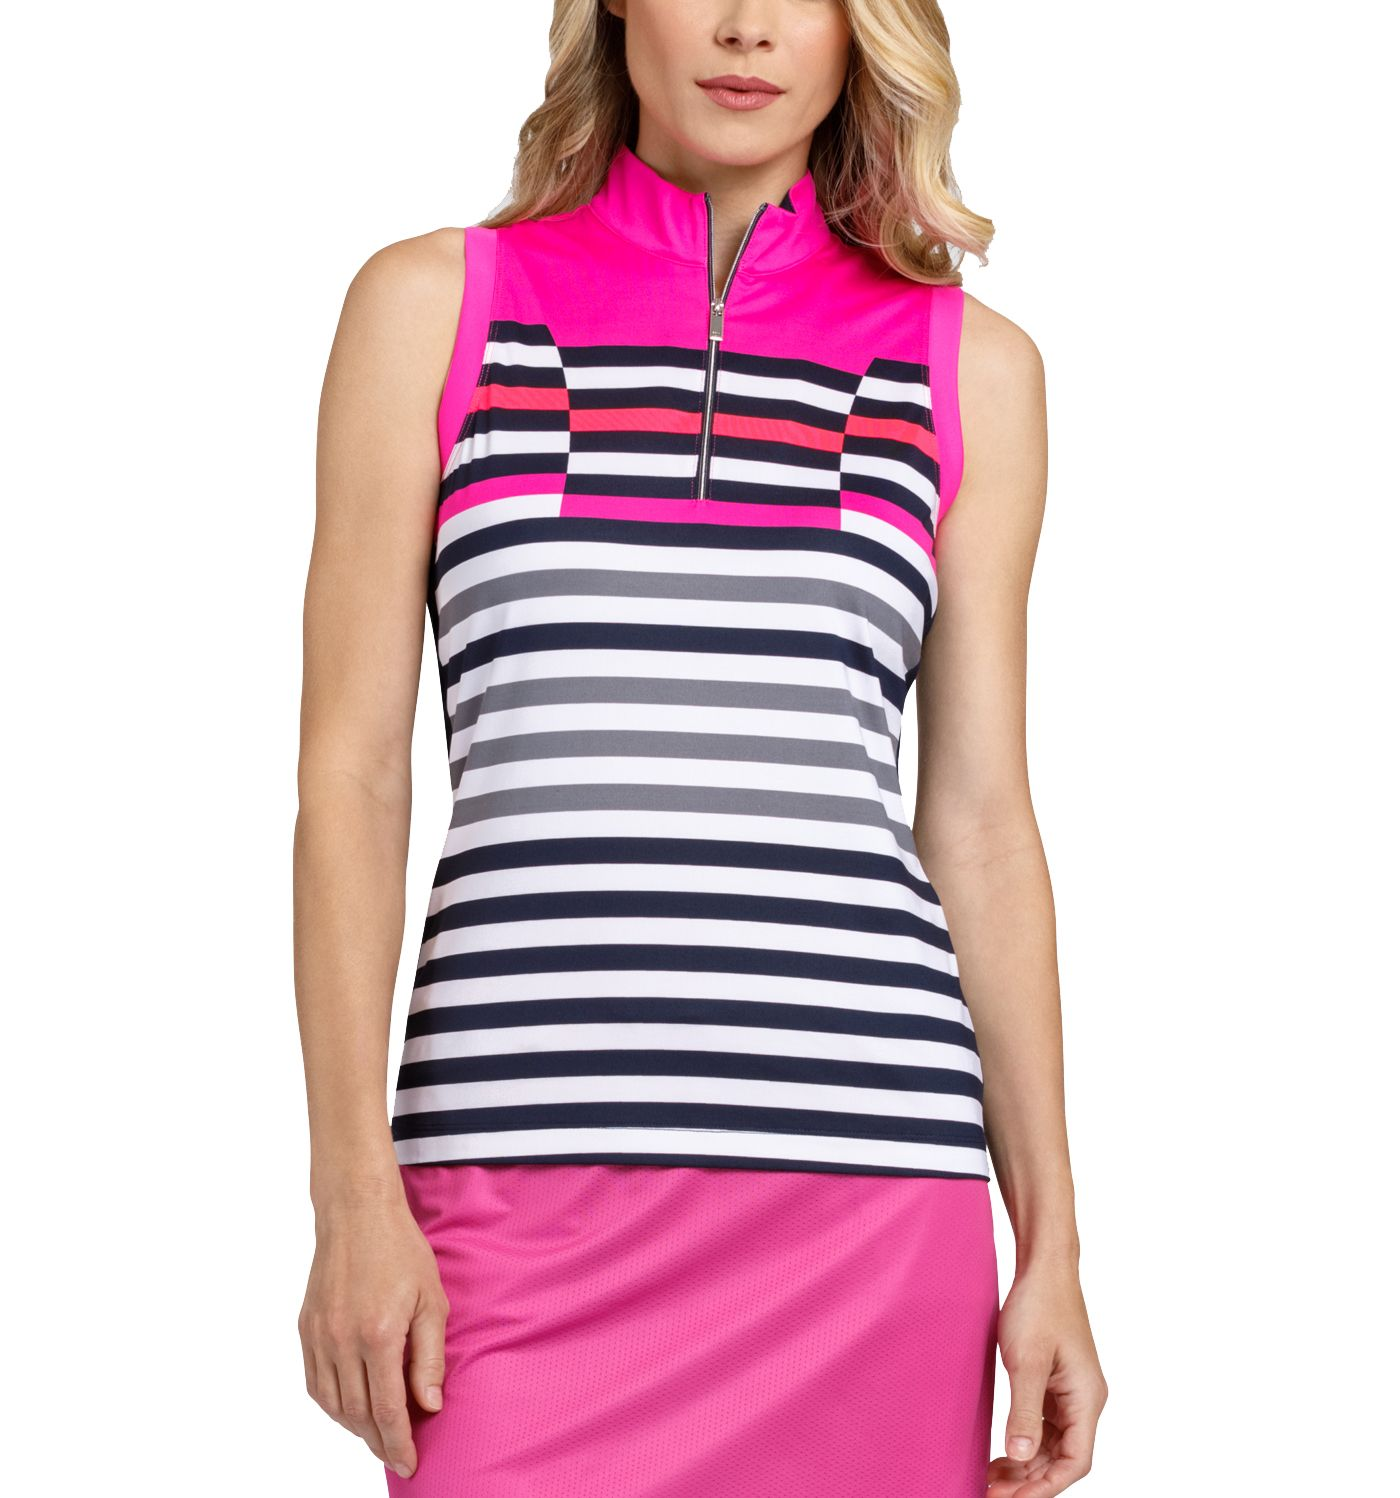 Tail Women's Sleeveless ¼ Zip Racerback Golf Top